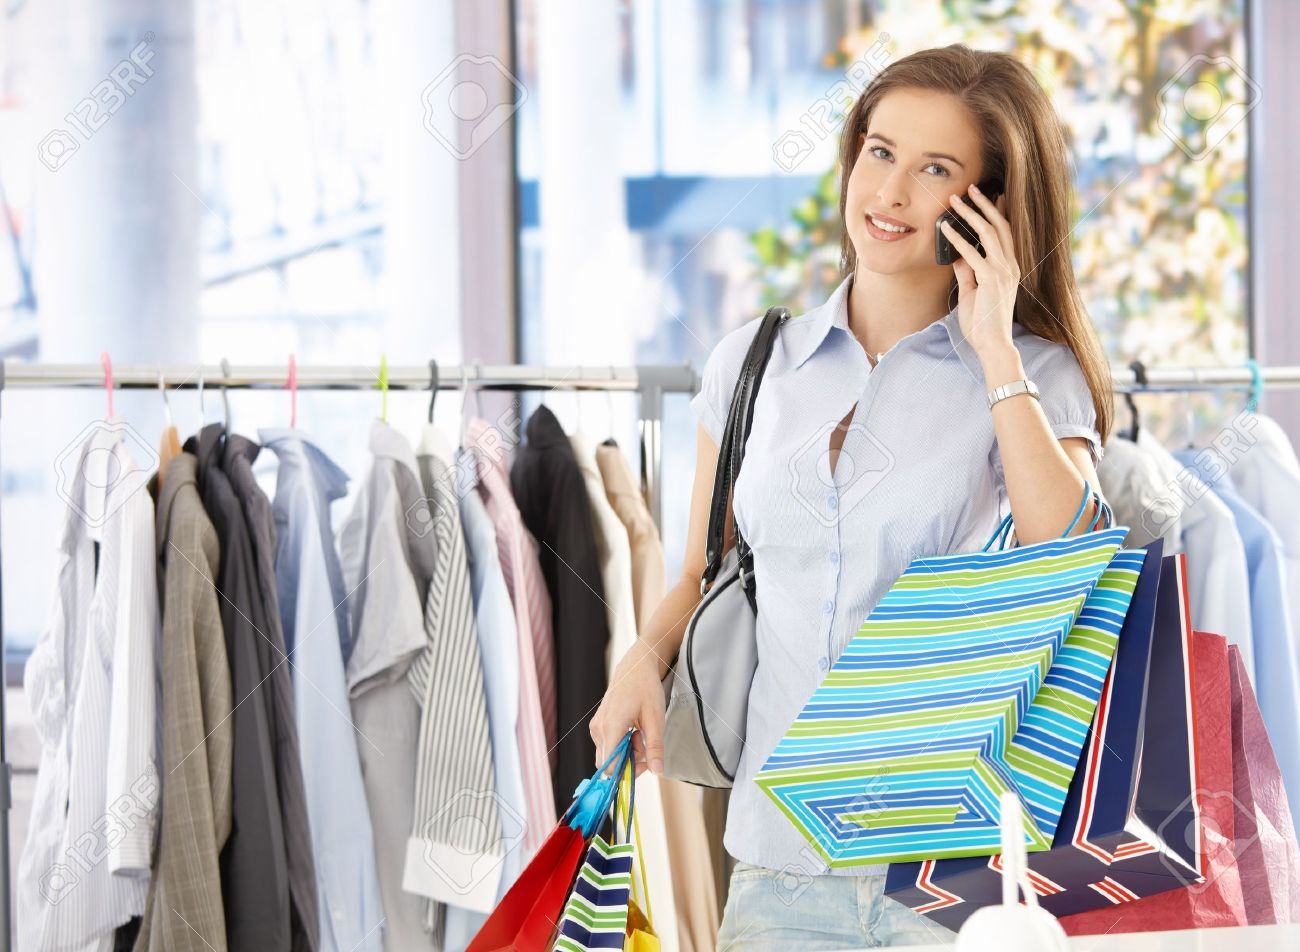 Woman on mobile phone call standing in clothes shop, holding shopping bags, smiling. Stock Photo - 8604176